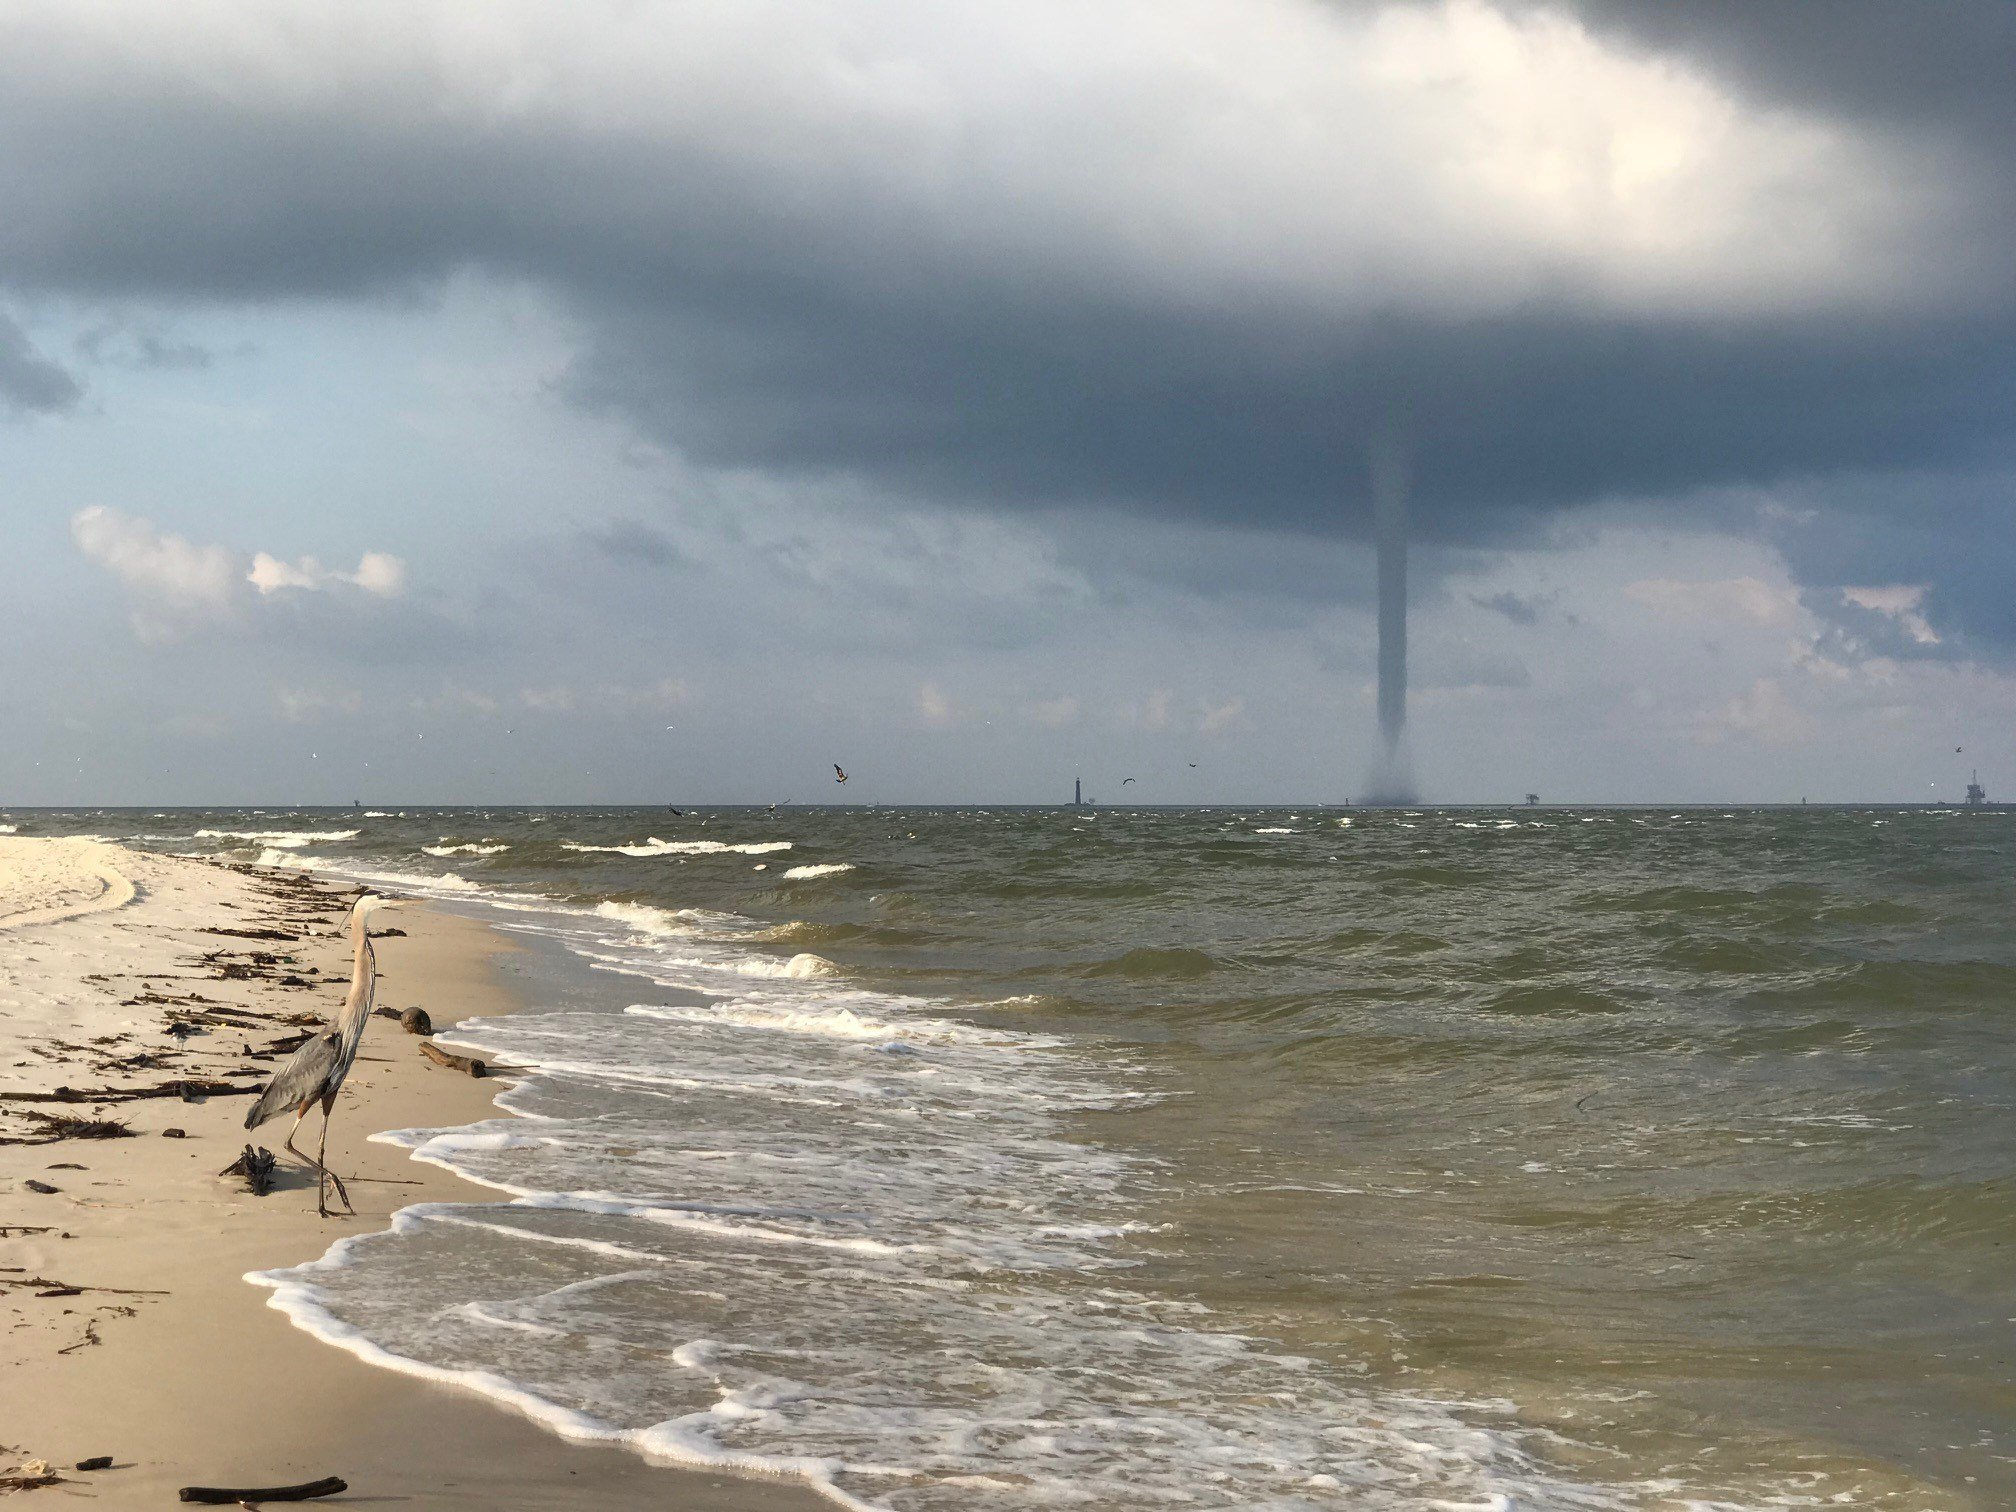 FOX10 Newsviewer Sam Sumlin provides these images of a waterspout seen from the beach at Fort Morgan.